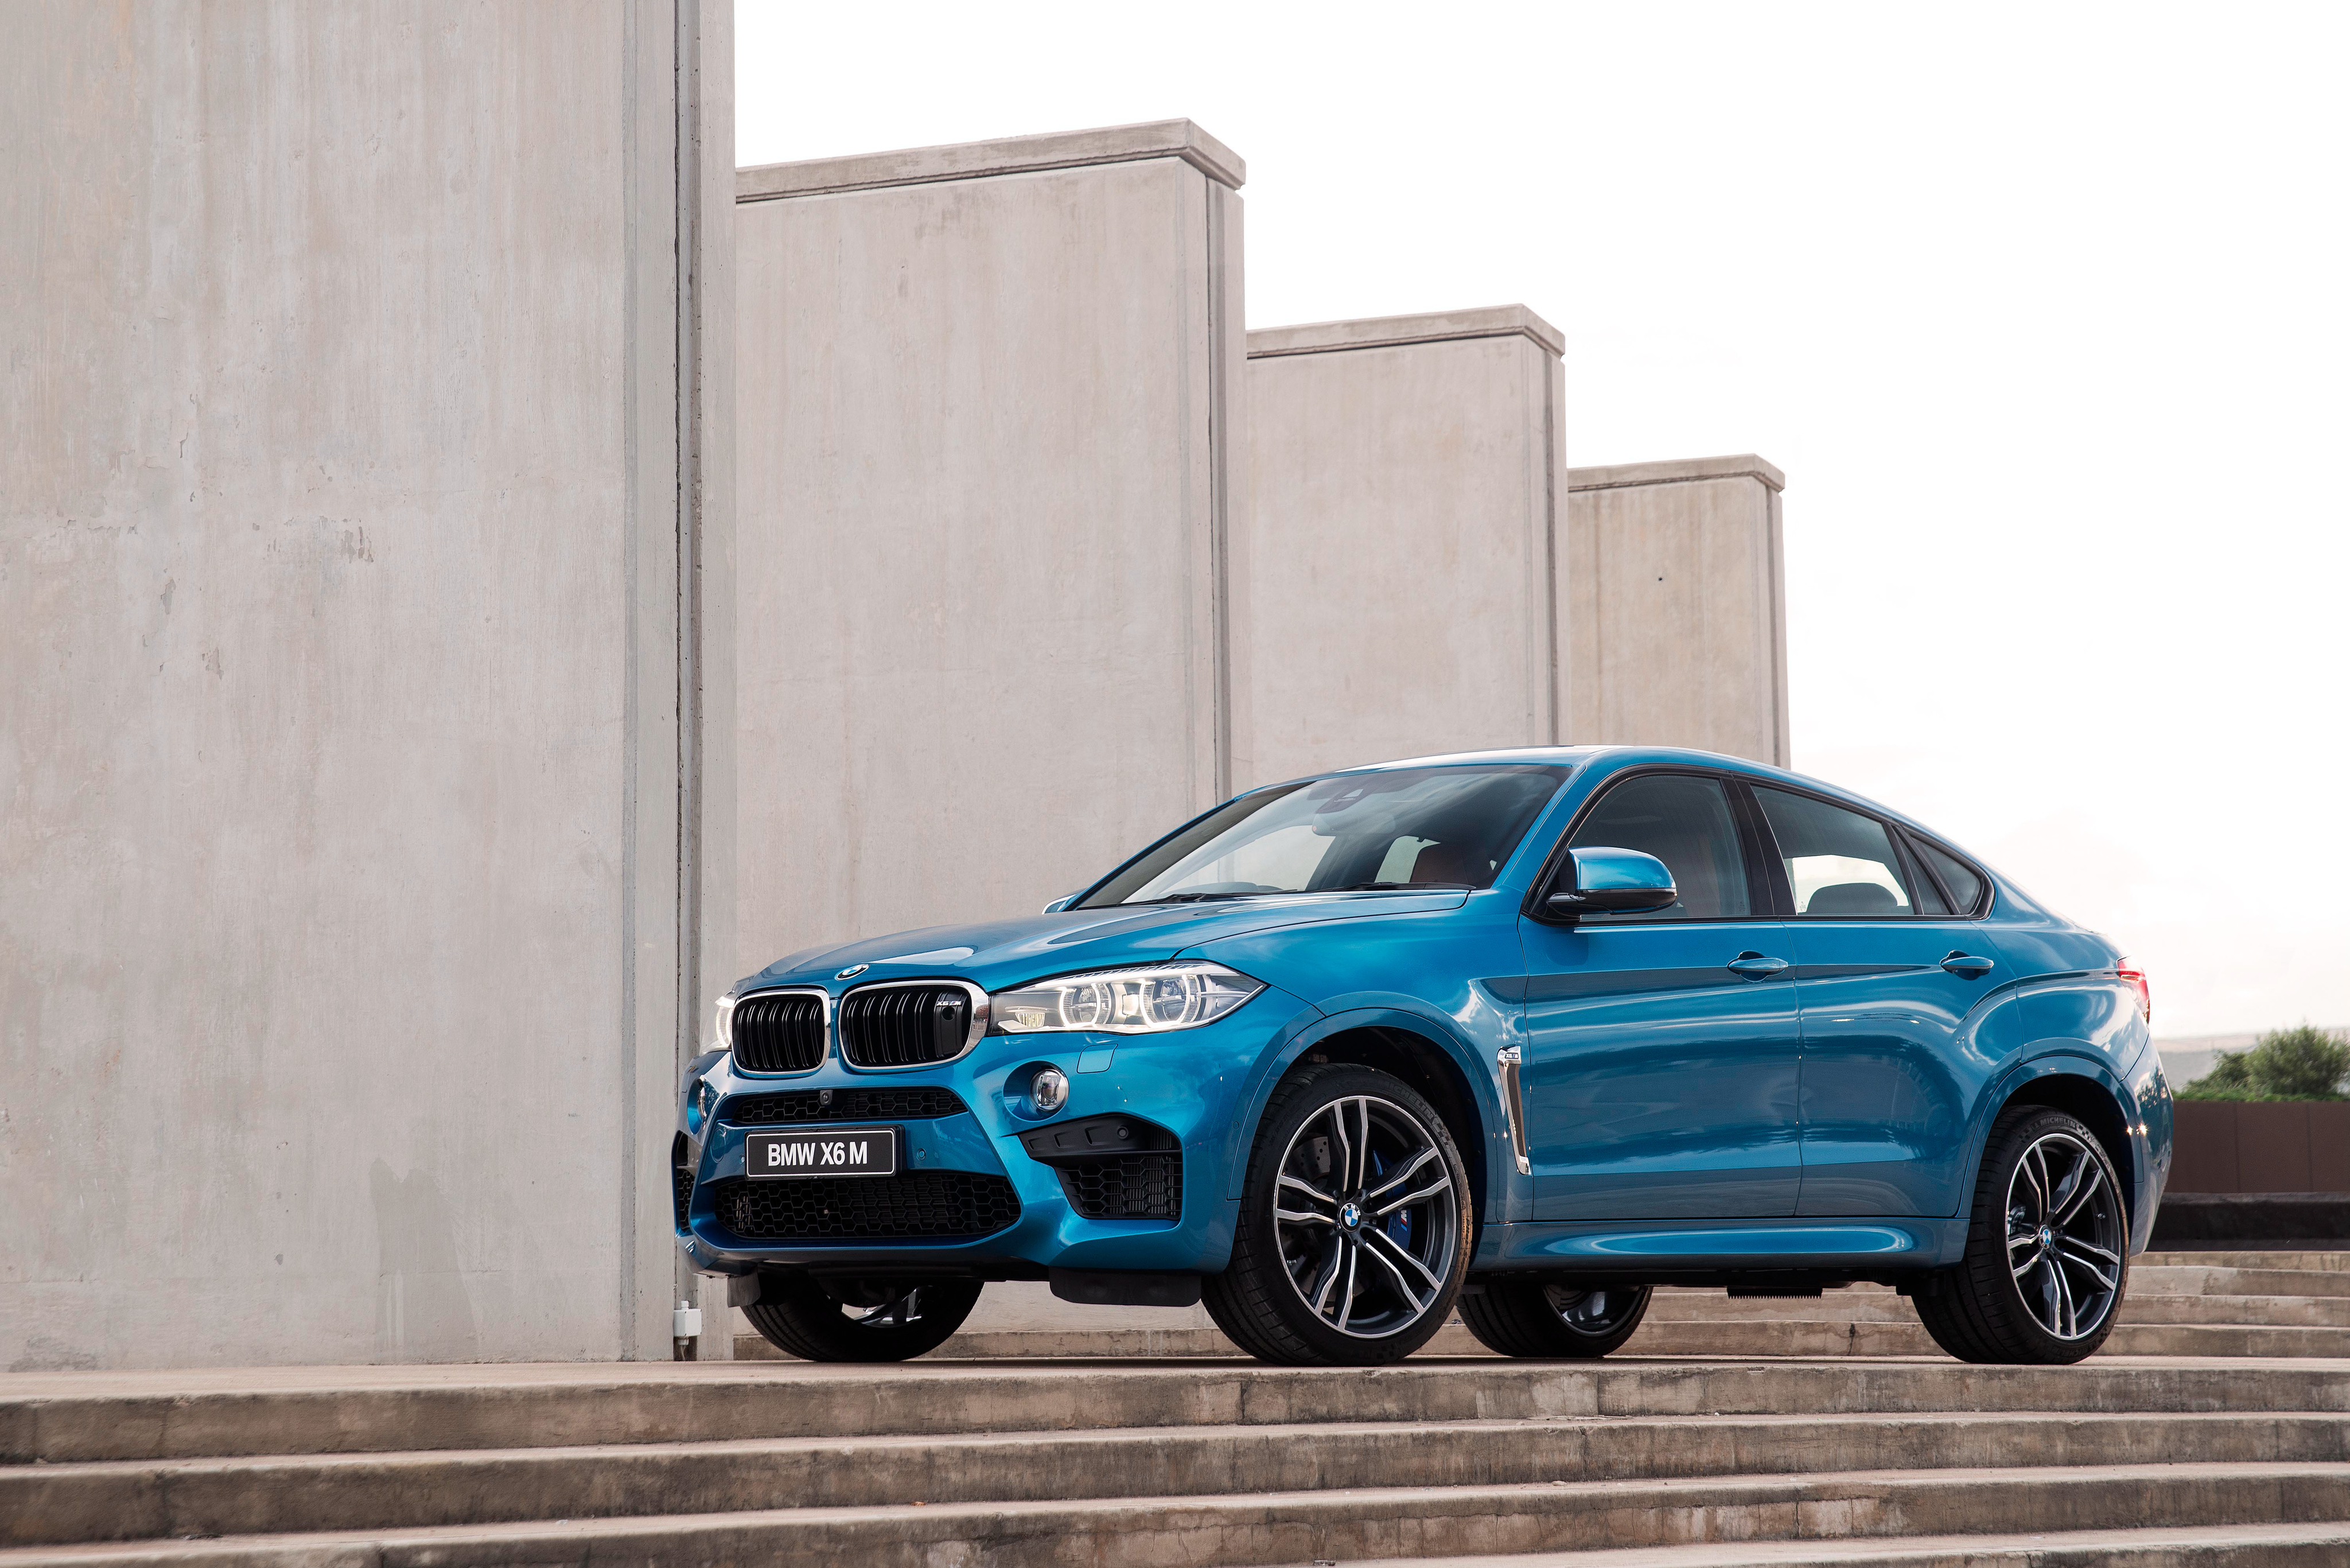 BMW X6 Wallpapers, Pictures, Images